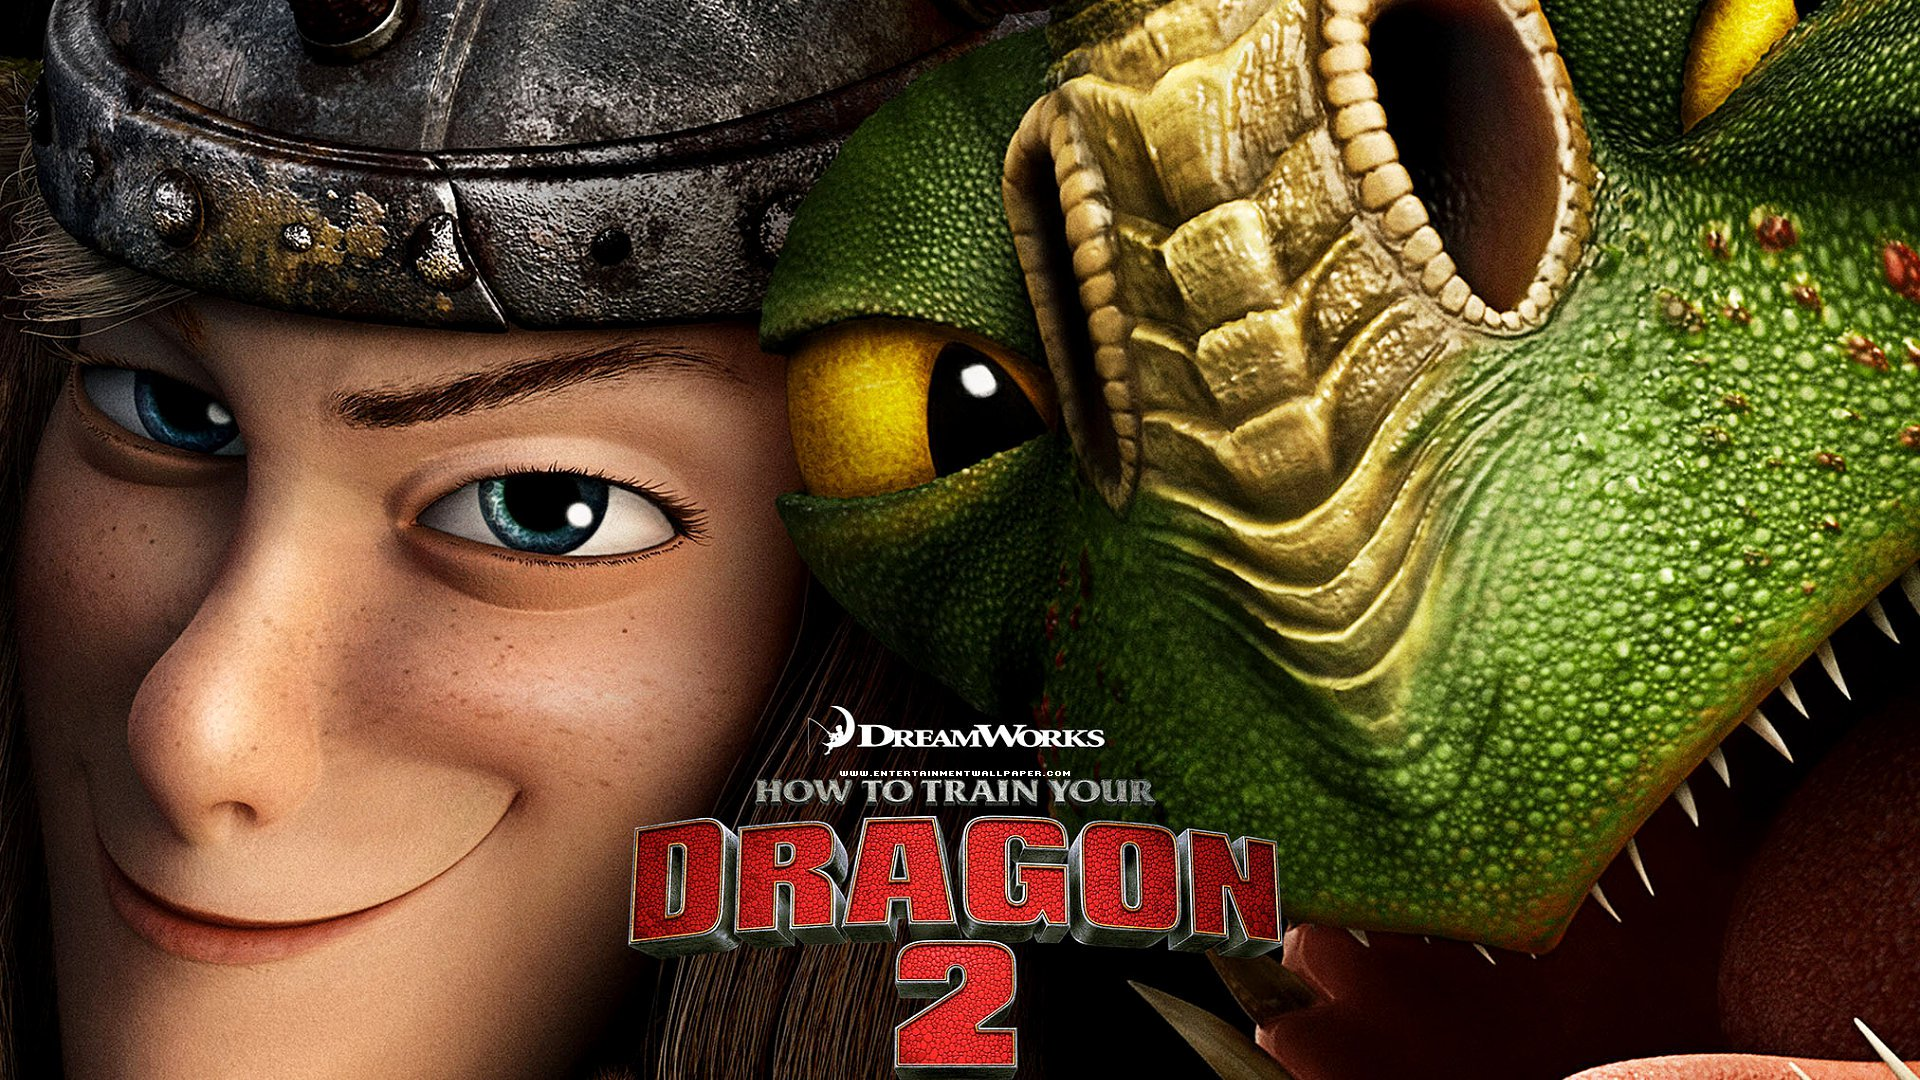 How To Train Your Dragon 2 HD Wallpapers For Your Desktop Backgrounds & Wallpapers 2014